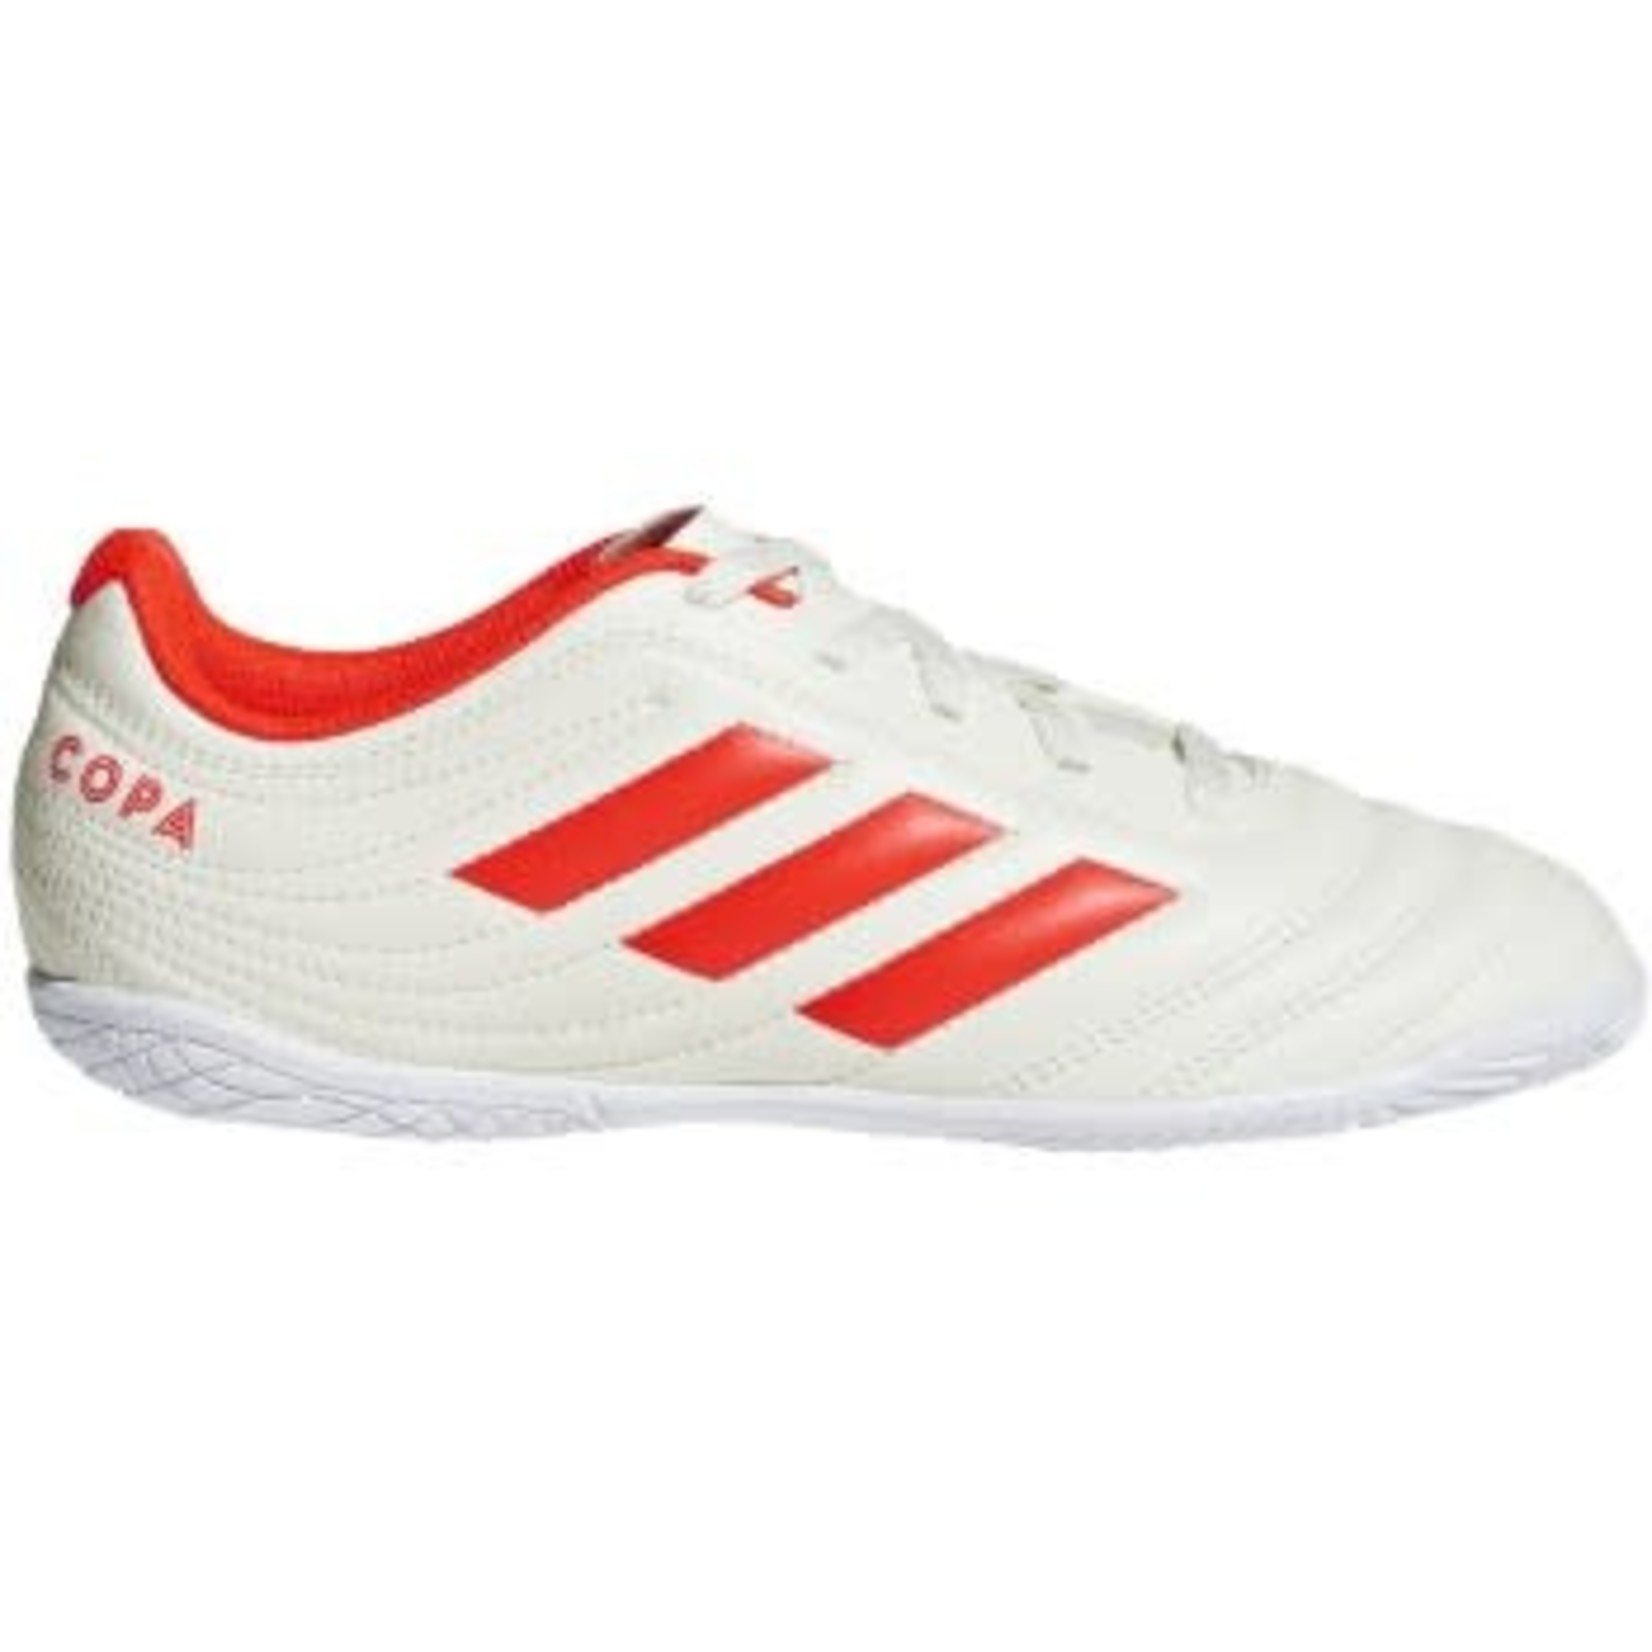 ADIDAS COPA 19.4 IN JR (WHITE/RED)